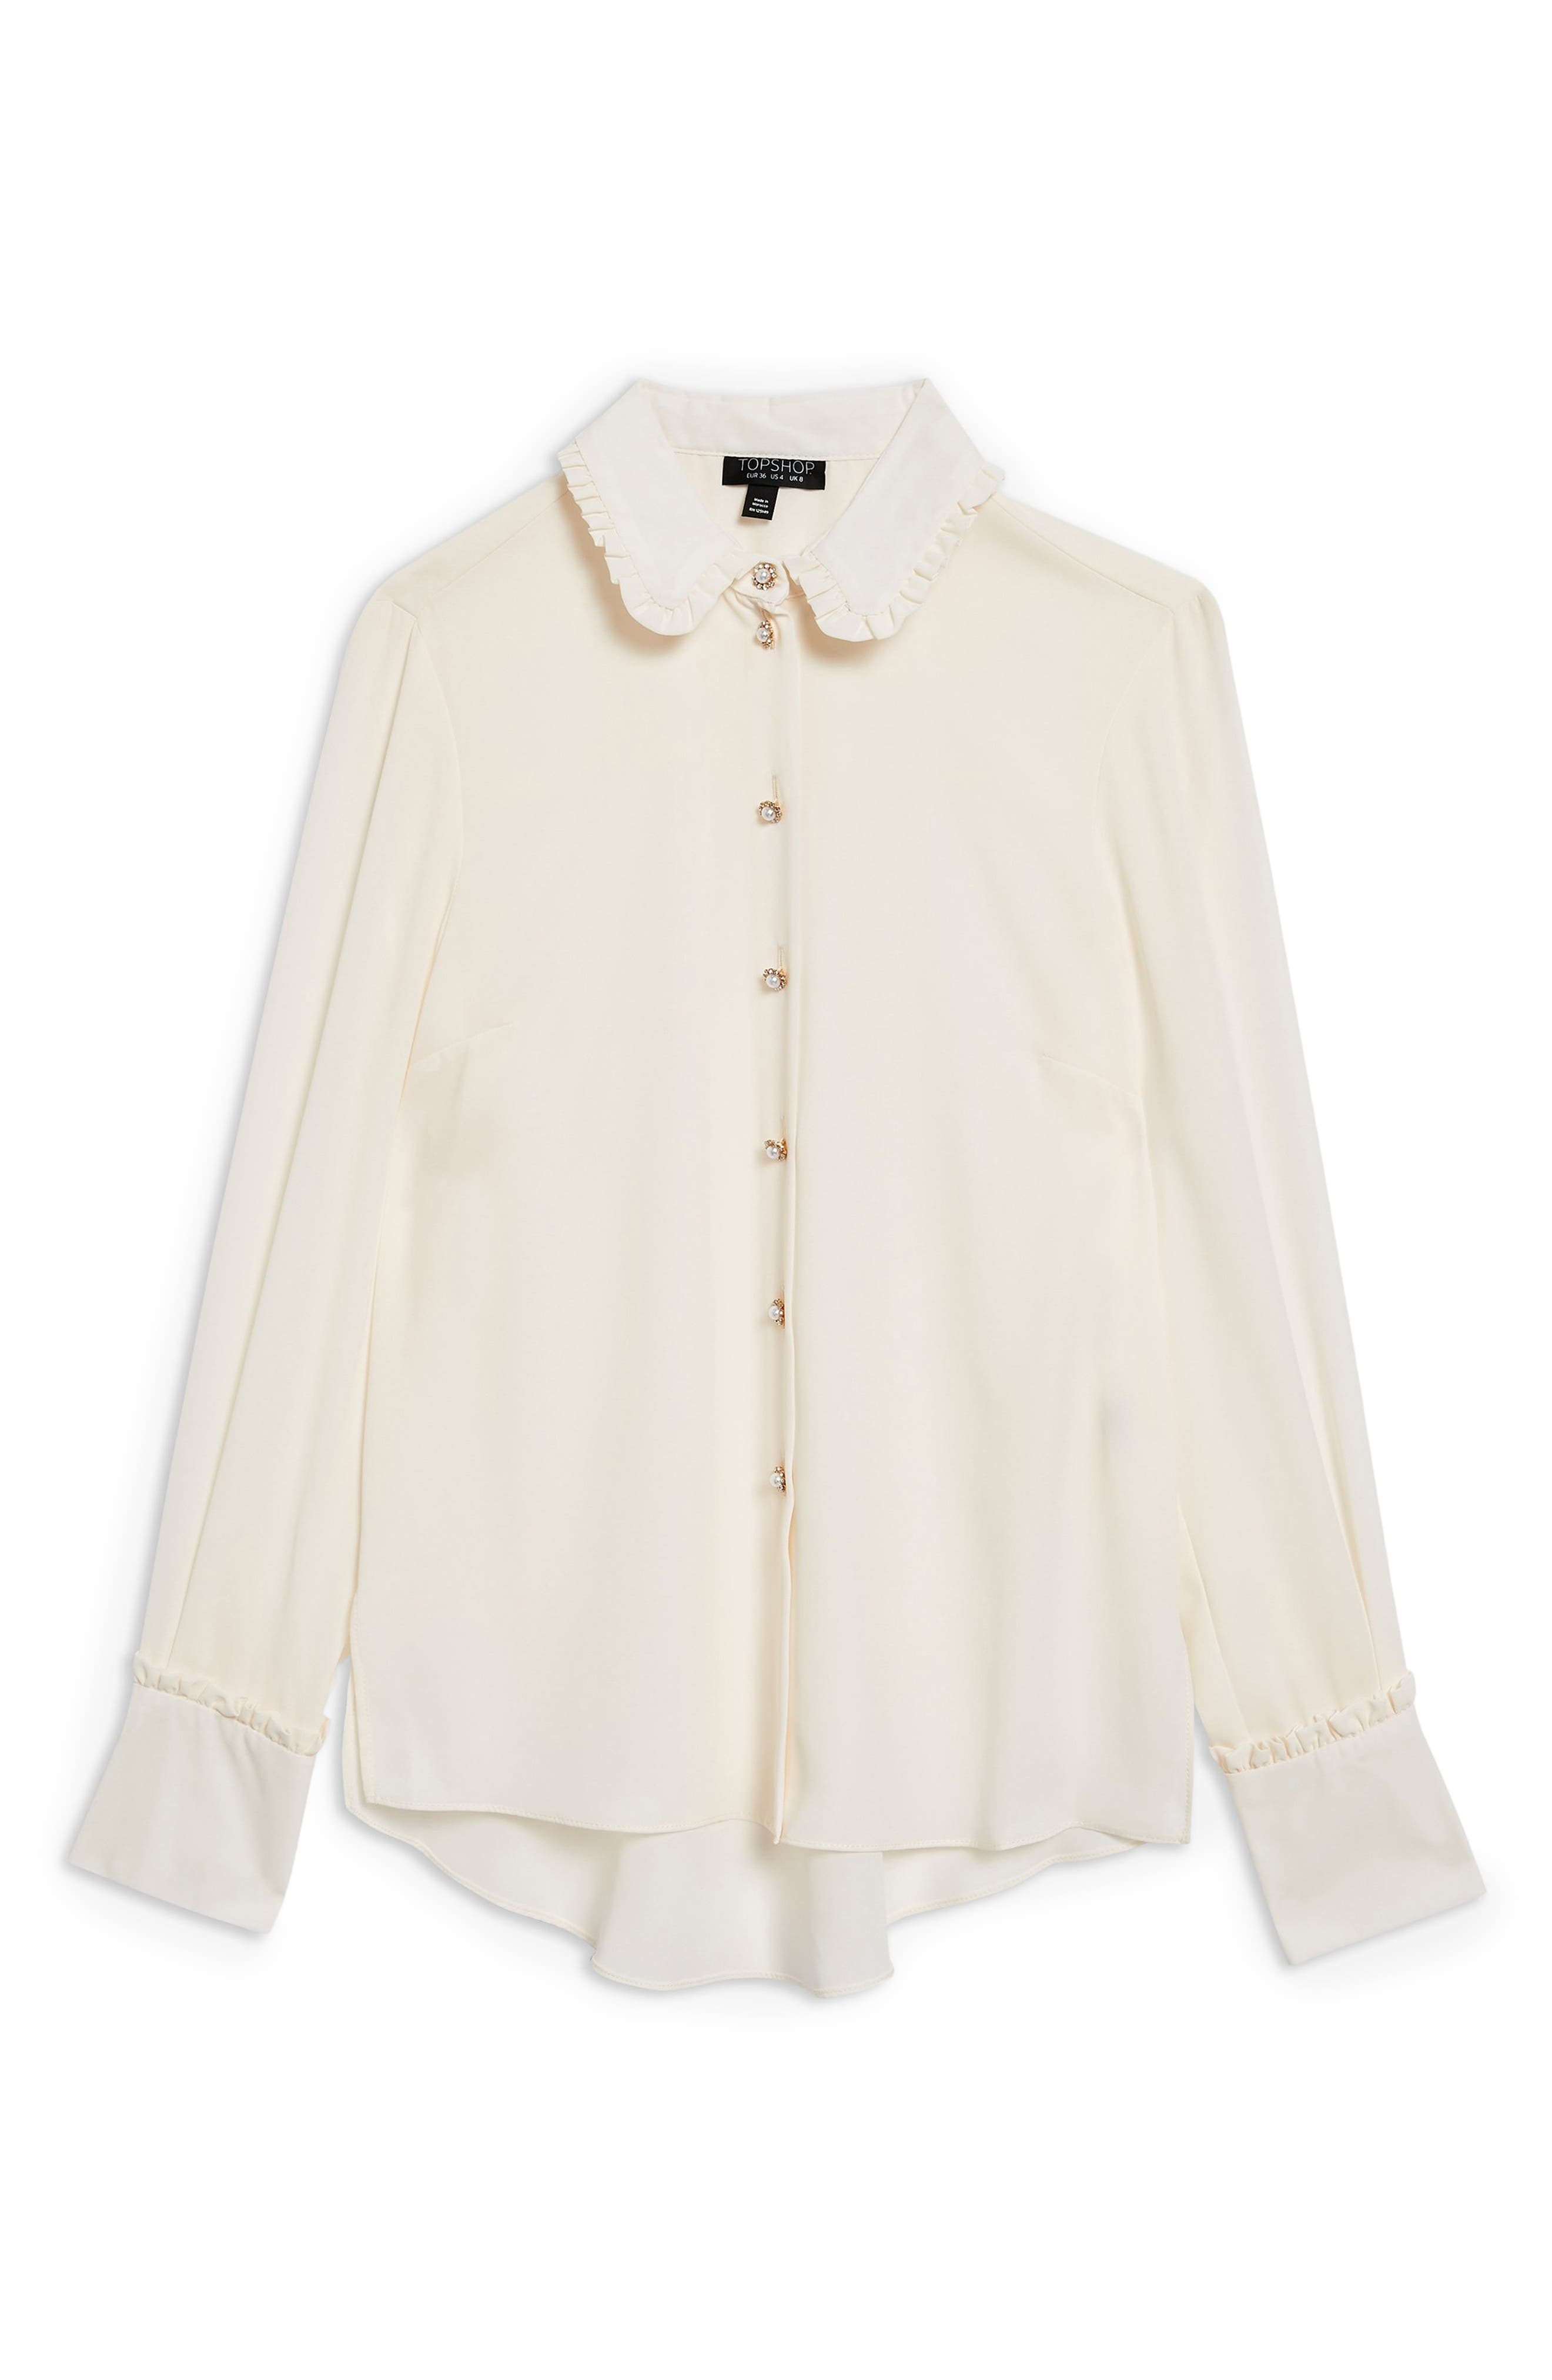 Ruffle Collar Shirt,                             Alternate thumbnail 4, color,                             CREAM